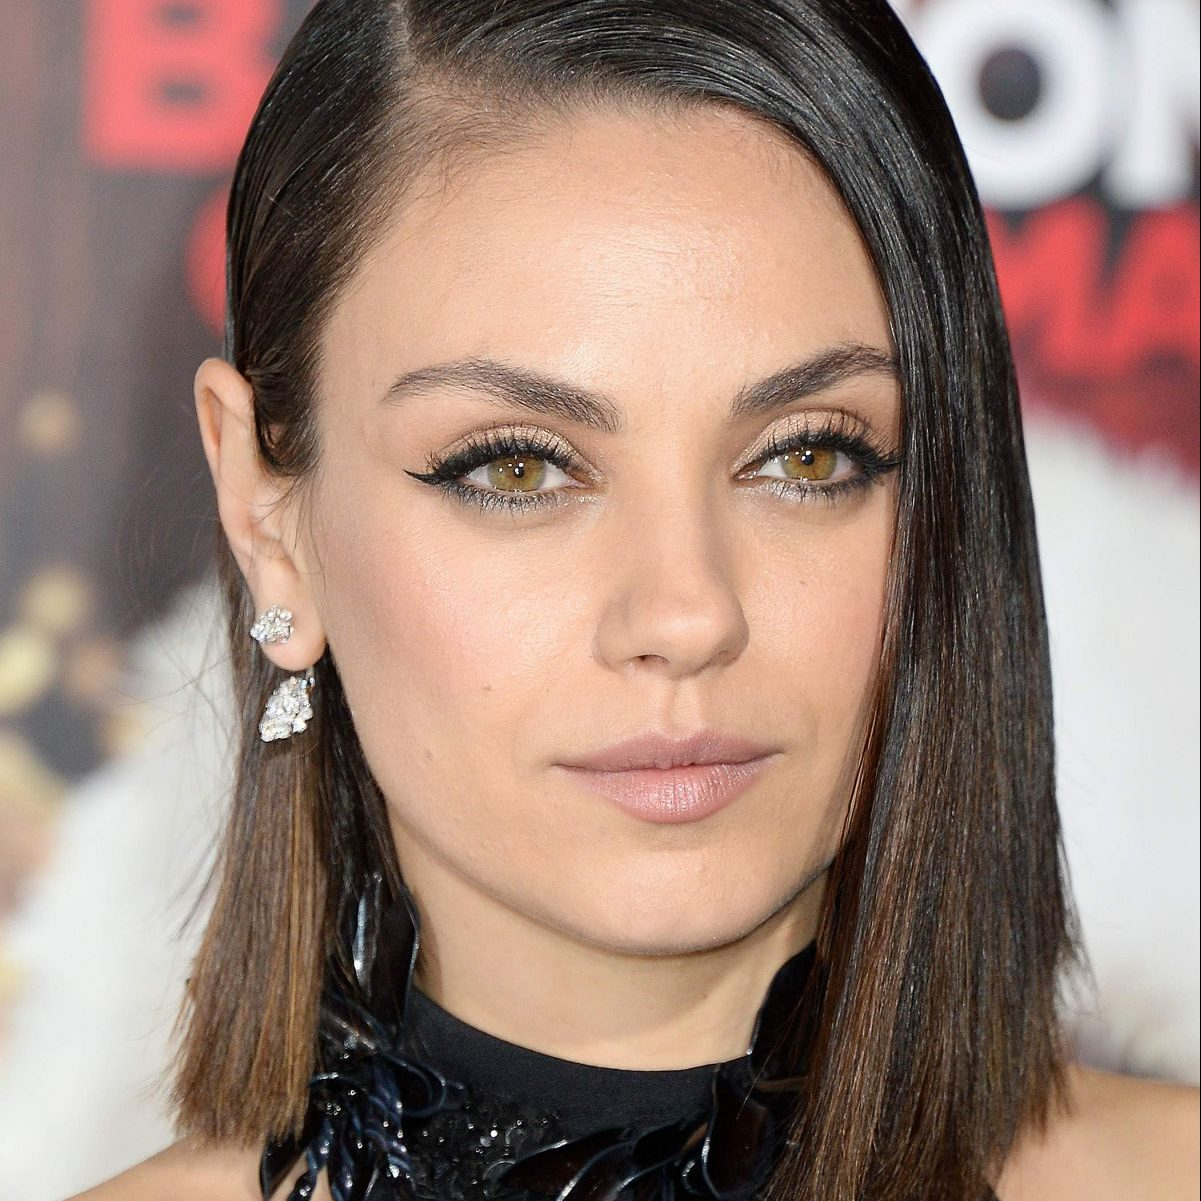 MILA-KUNIS-MAKEUP-edited-e1524010827238